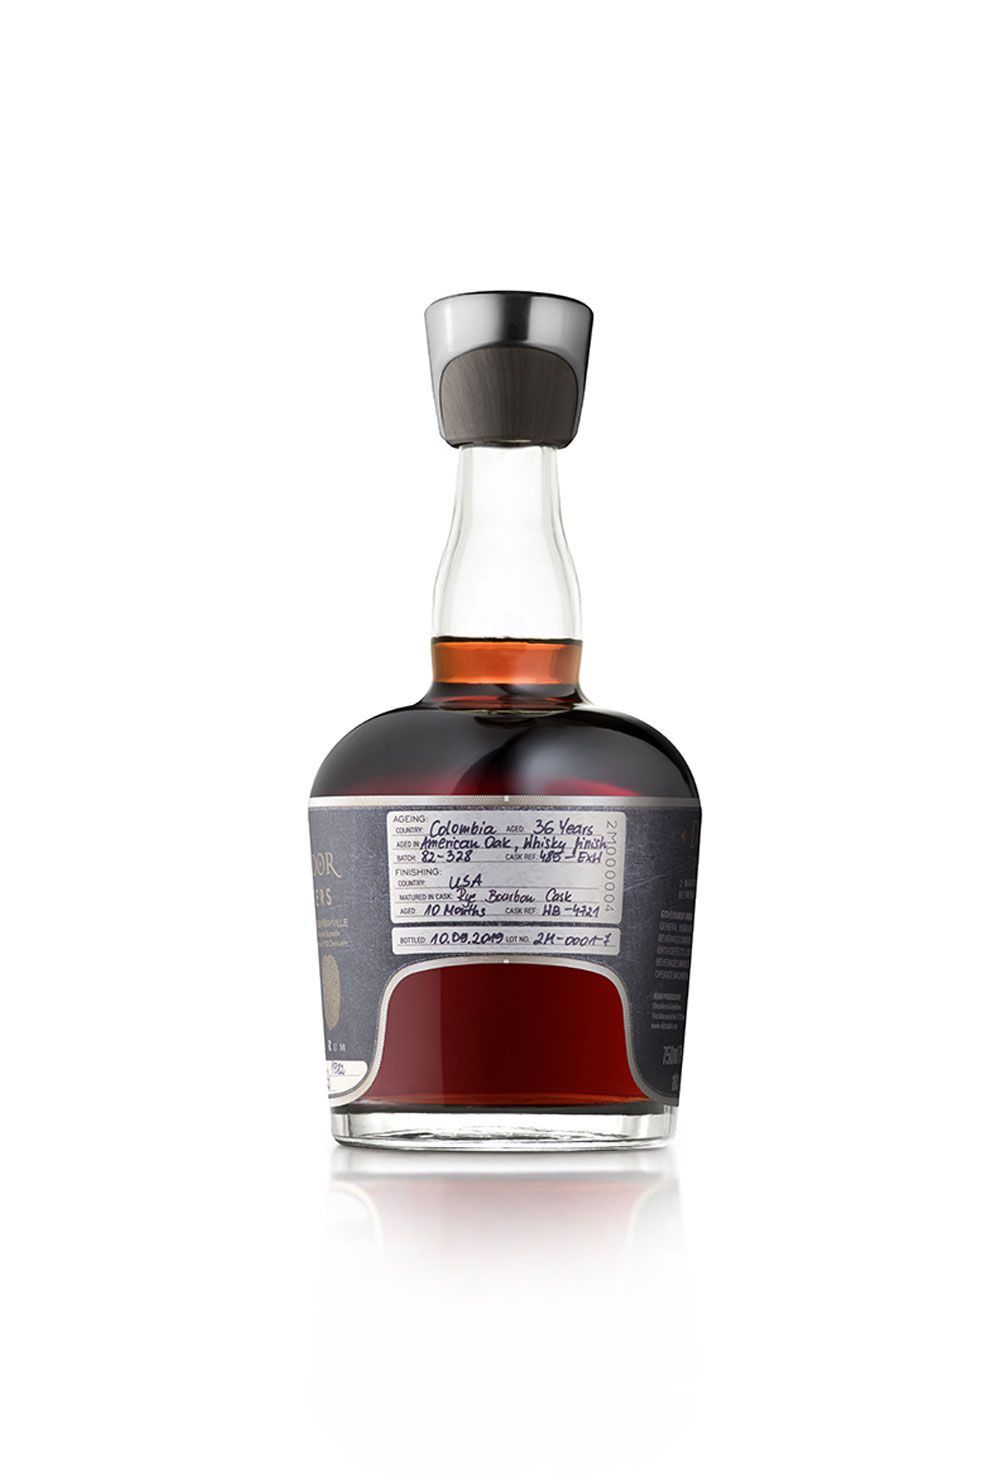 Rum Dictador 2 Masters Hardy Summer Blend 1976 and 1978